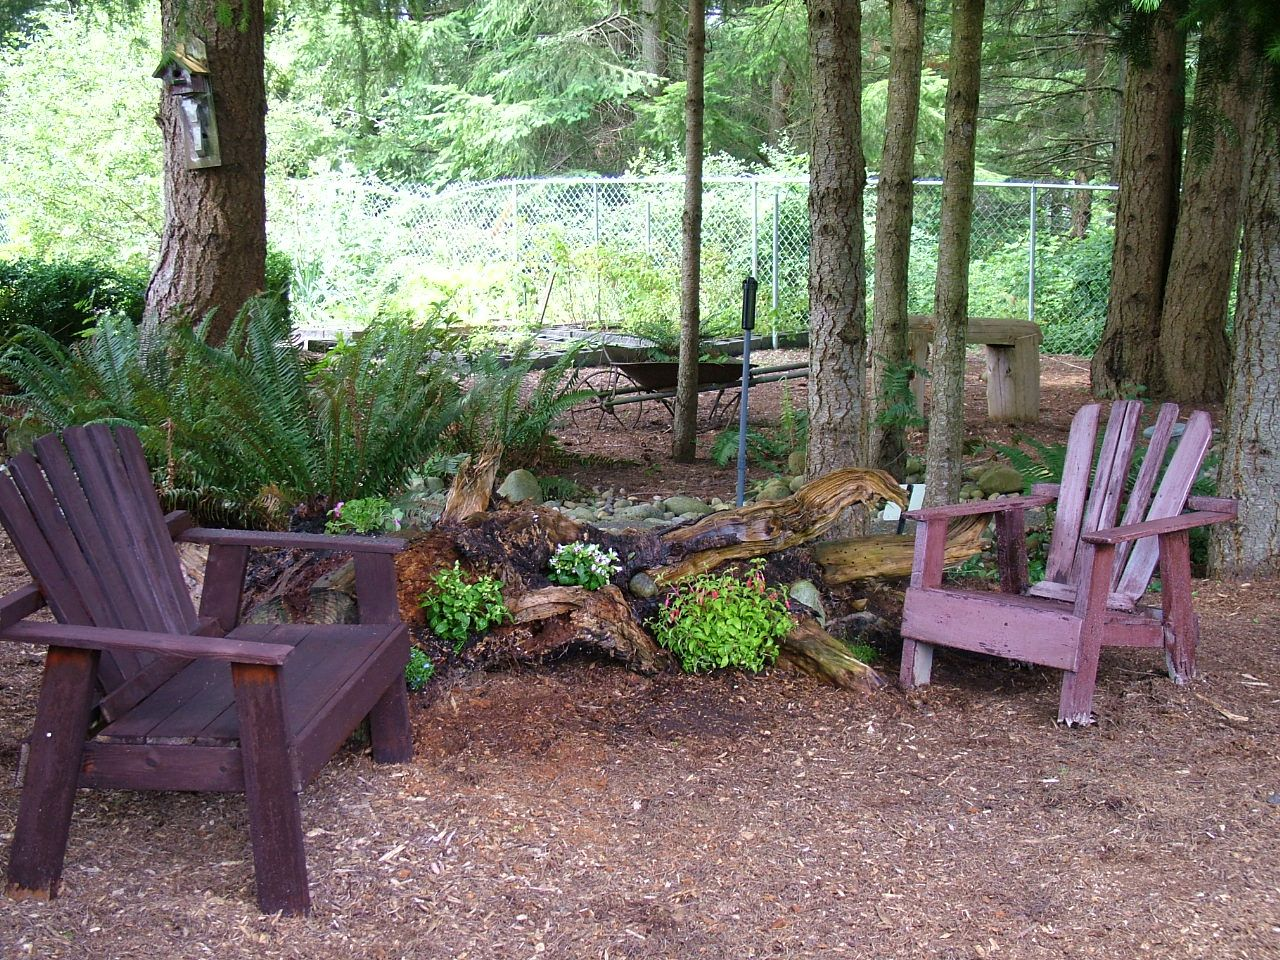 My new woodsy backyard sitting area Old tree roots with flowers